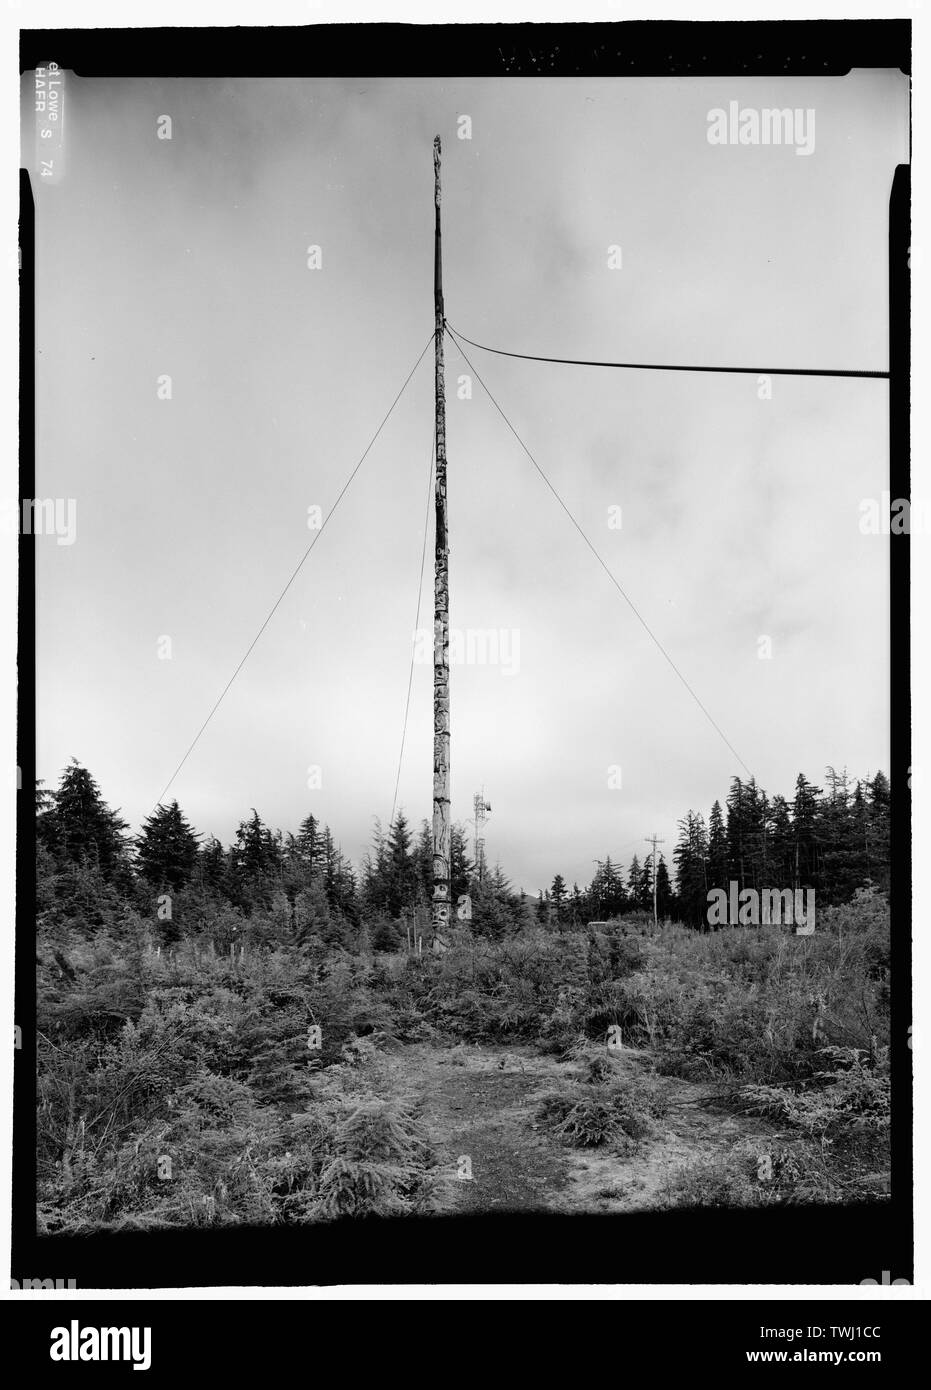 Same view from more southerly angle - Kake Salmon Cannery, Totem Pole, Kake, Wrangell-Petersburg Census Area, AK - Stock Image